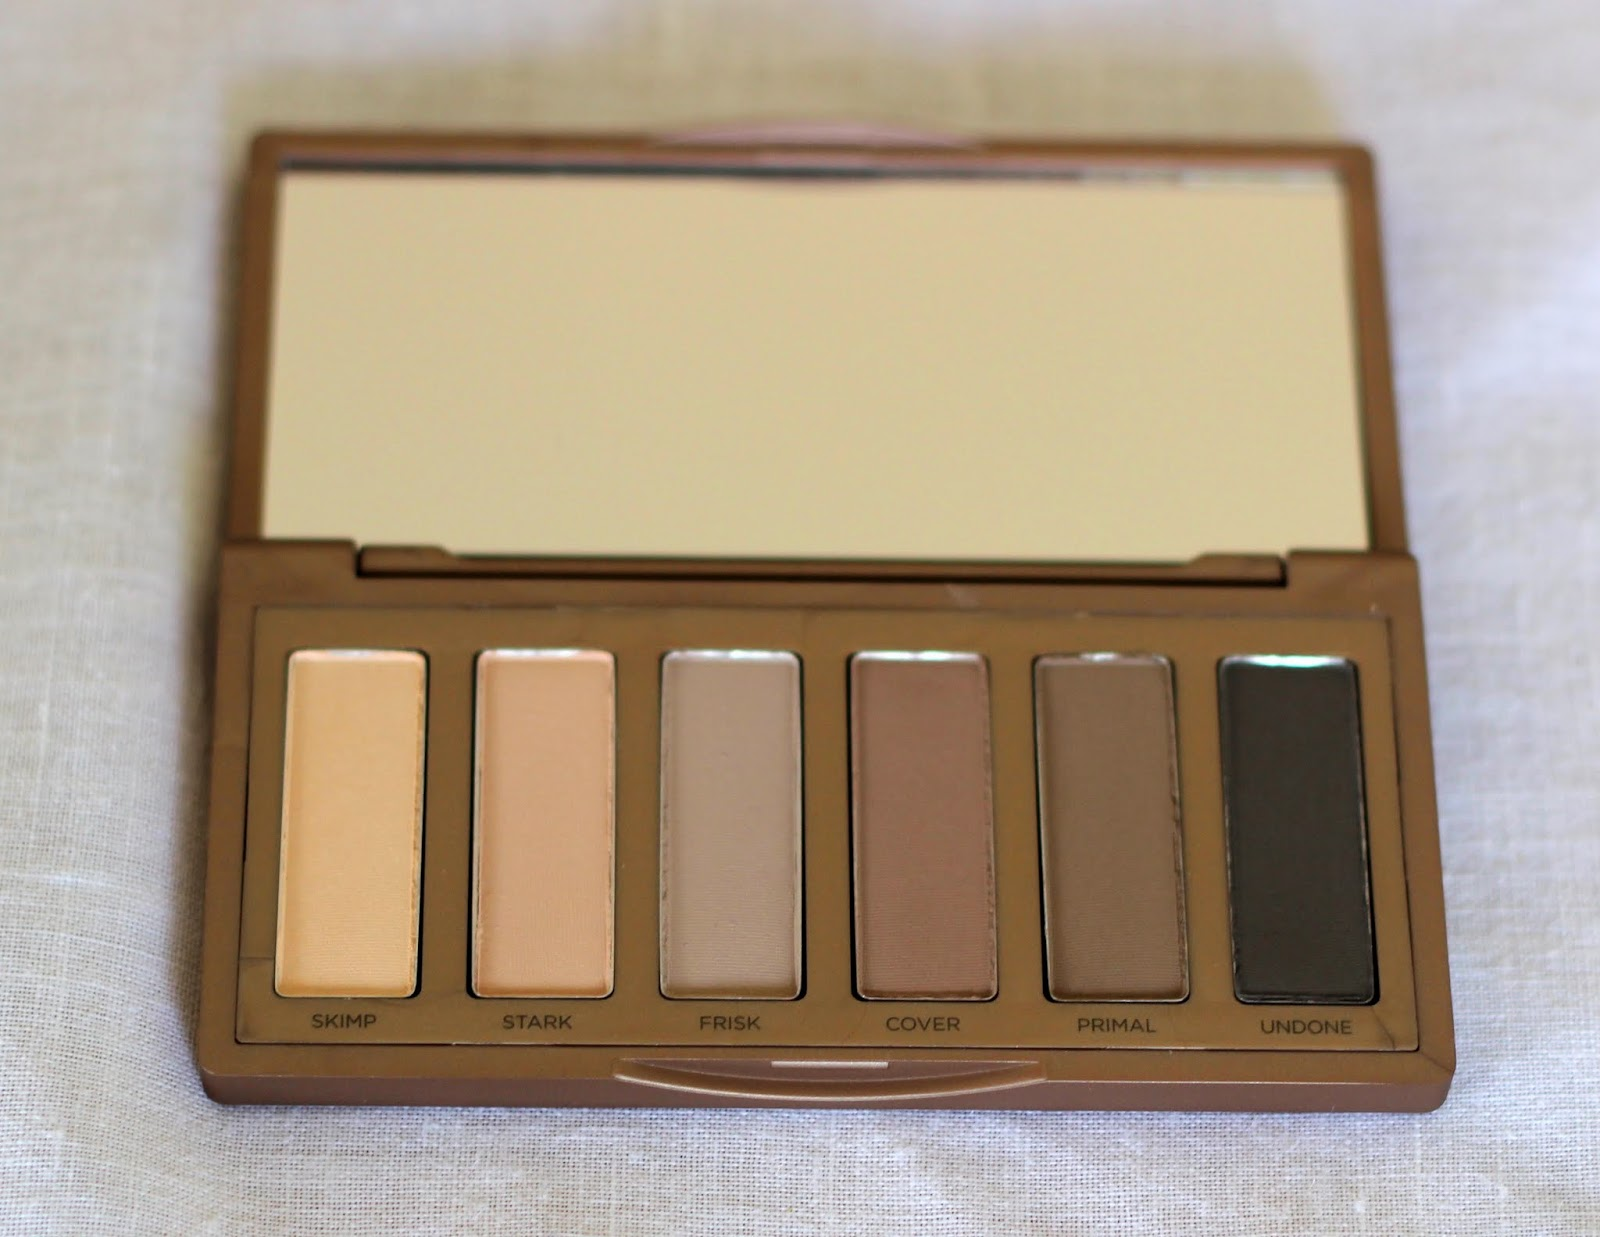 eyeshadow, palette, urban decay, neutral, naked 2, basics, makeup artist, beauty, cosmetics